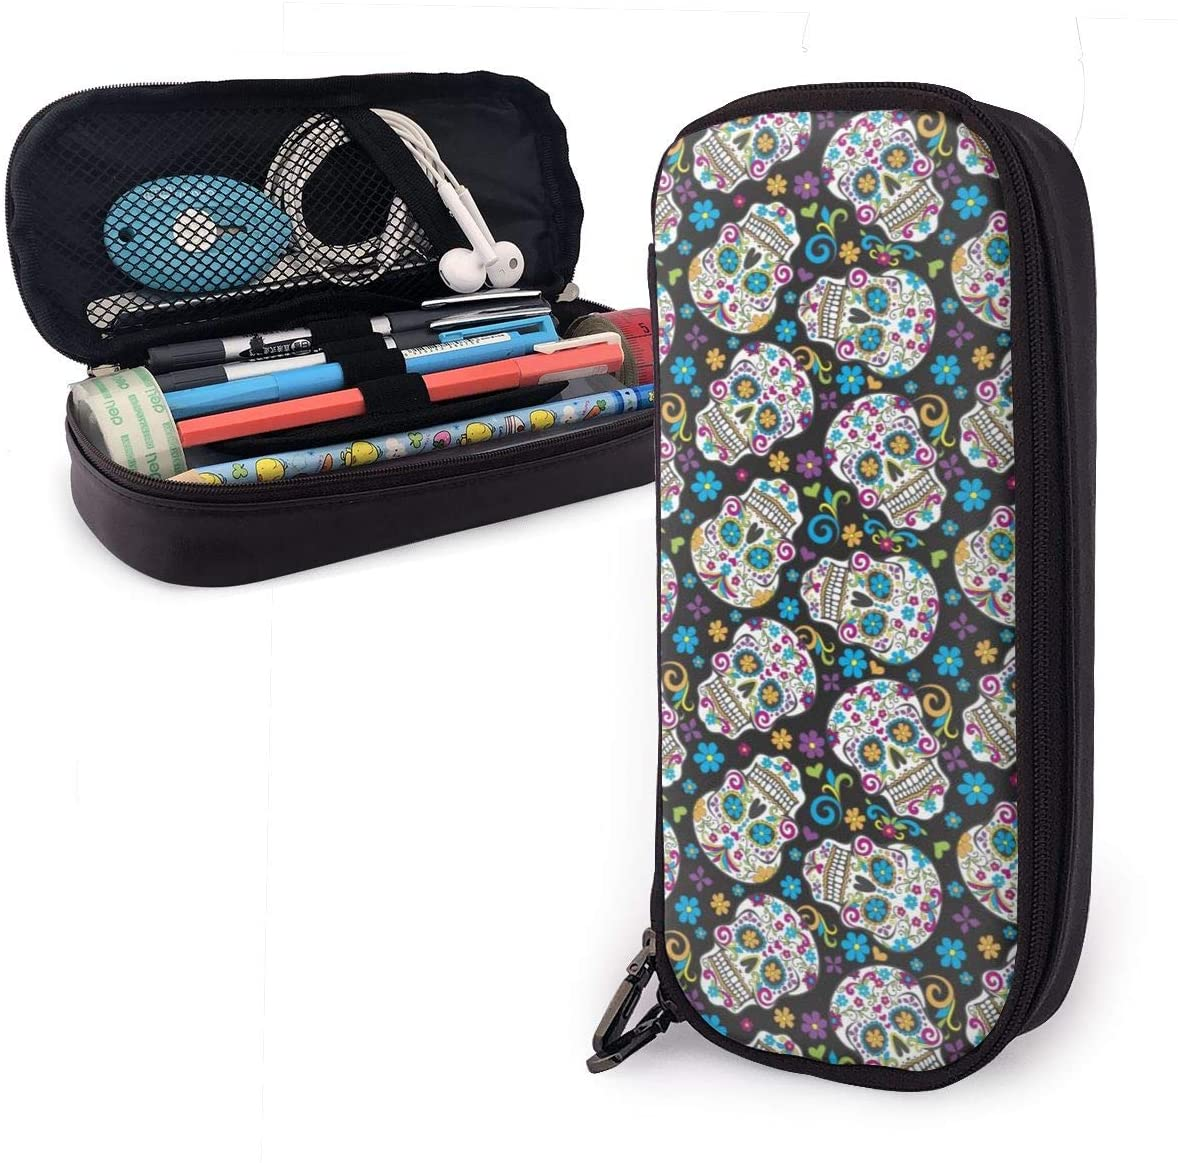 XUJ YOGA Waterproof Leather Sugar Skulls Pencil Case Pen Bag Makeup Box Cosmetic Pouch High Capacity Stationery Holder Storage Organizer with Zipper for School Office Travel